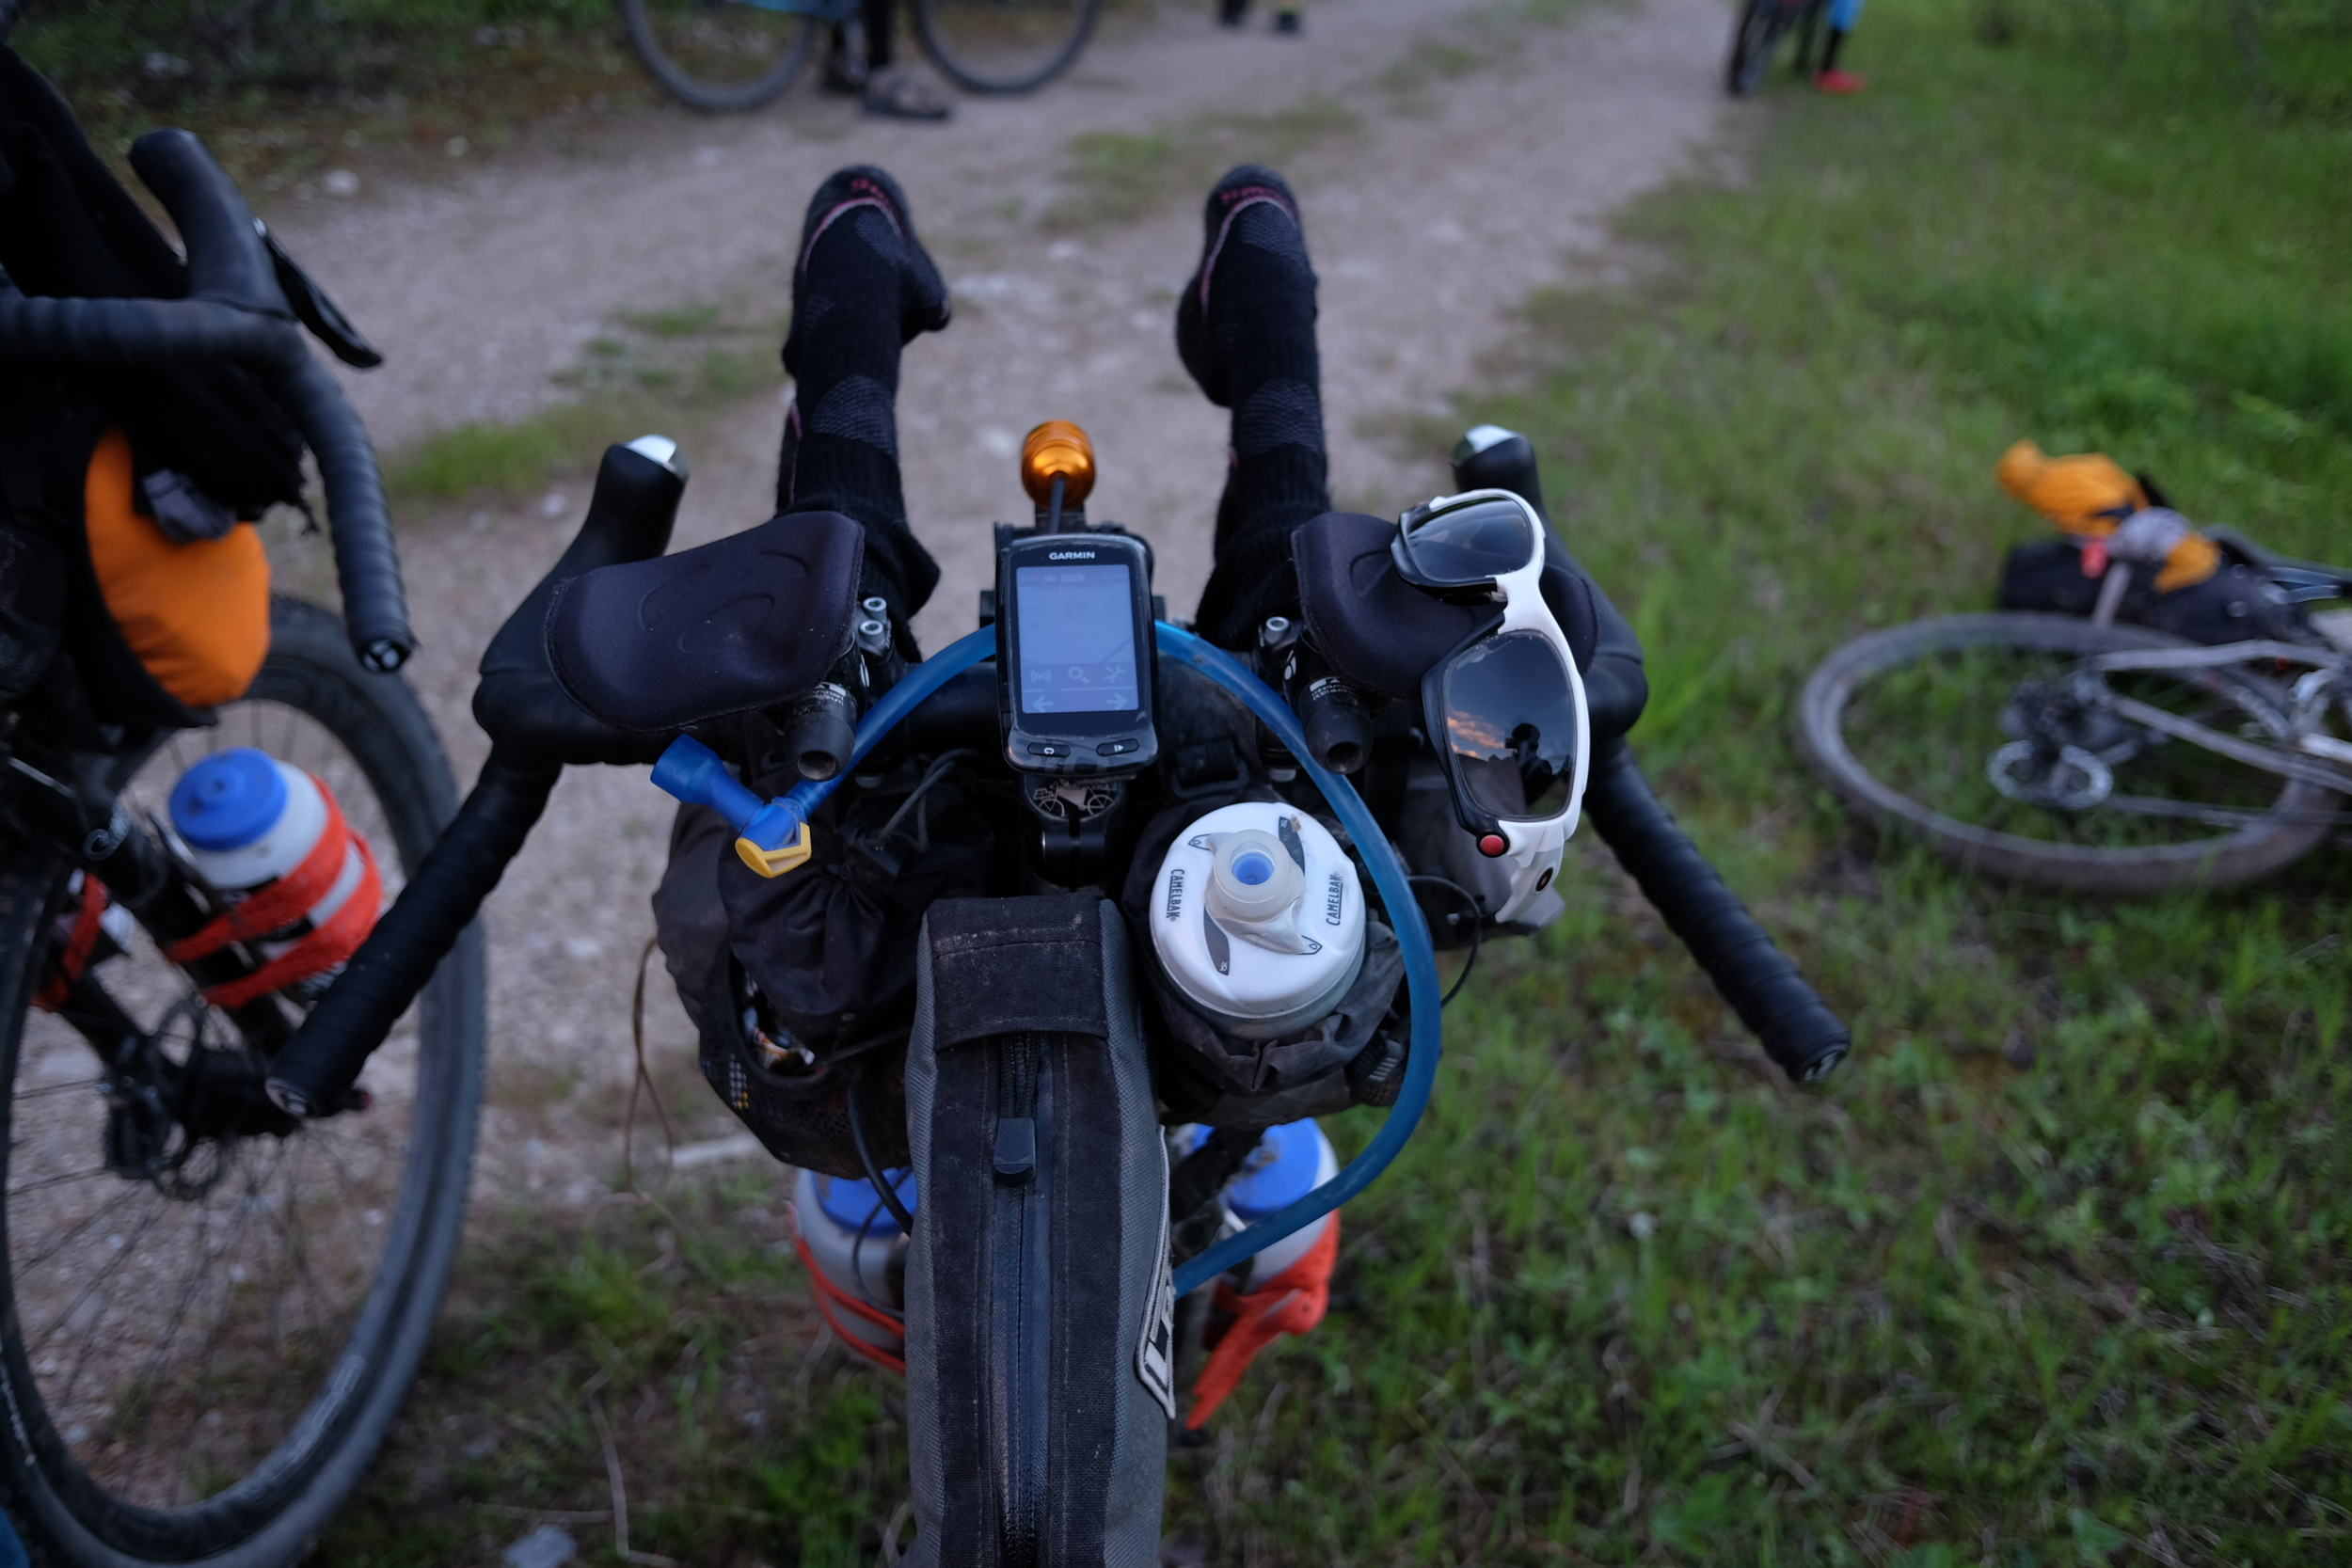 Aero bars quickly took on a second use as a dryer for our socks and gloves. We were wet for almost the first 7 days of the Tour Divide this year.